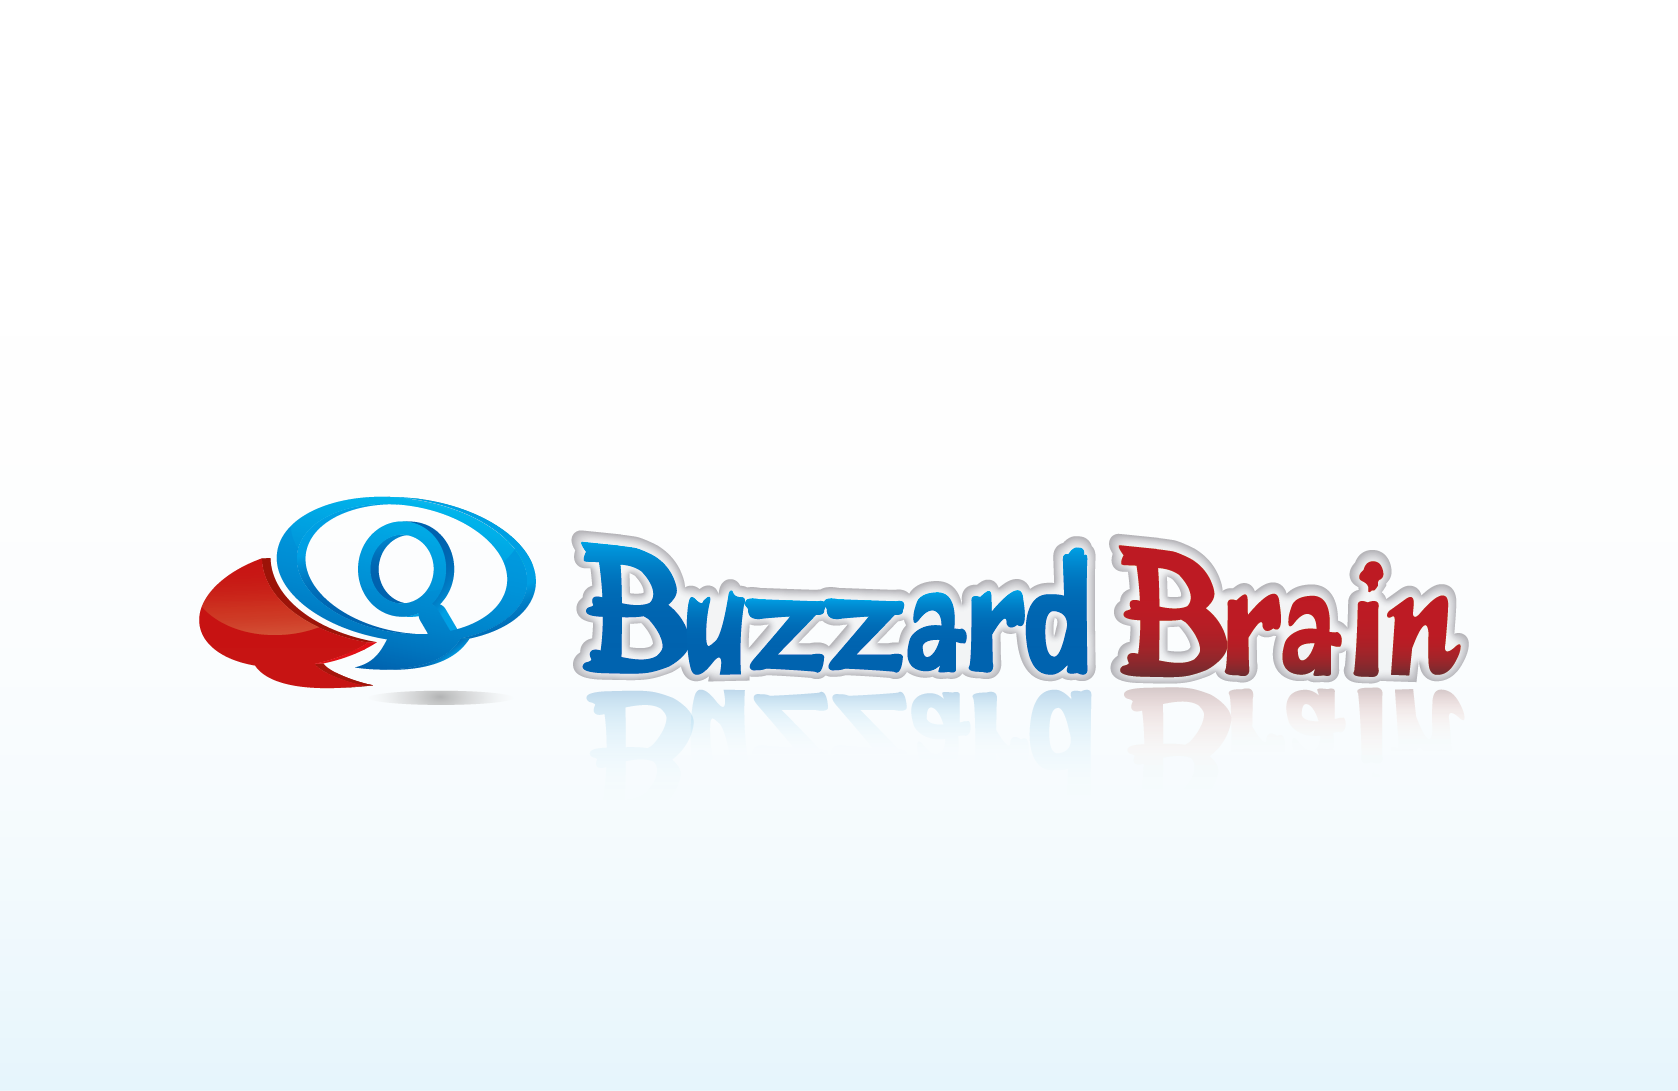 Logo Design by 354studio - Entry No. 89 in the Logo Design Contest Buzzard Brain Logo Design.